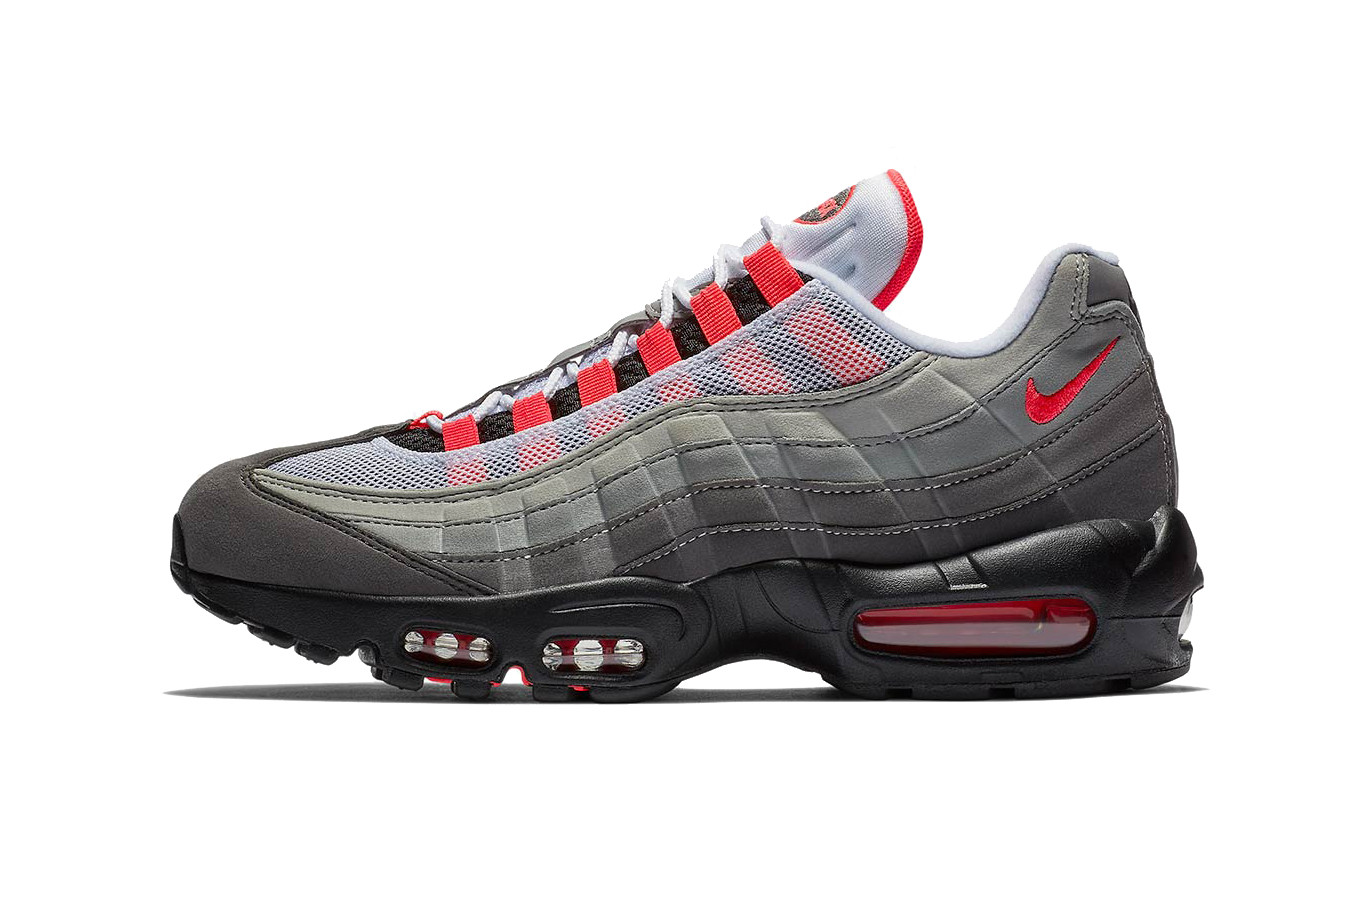 huge discount 6f7c6 a7bd4 95 AIR MAX 95. I mean, it s probably nothing to get excited about. She  could see it vanish. He took her to places she d never been, right there in  her loft.